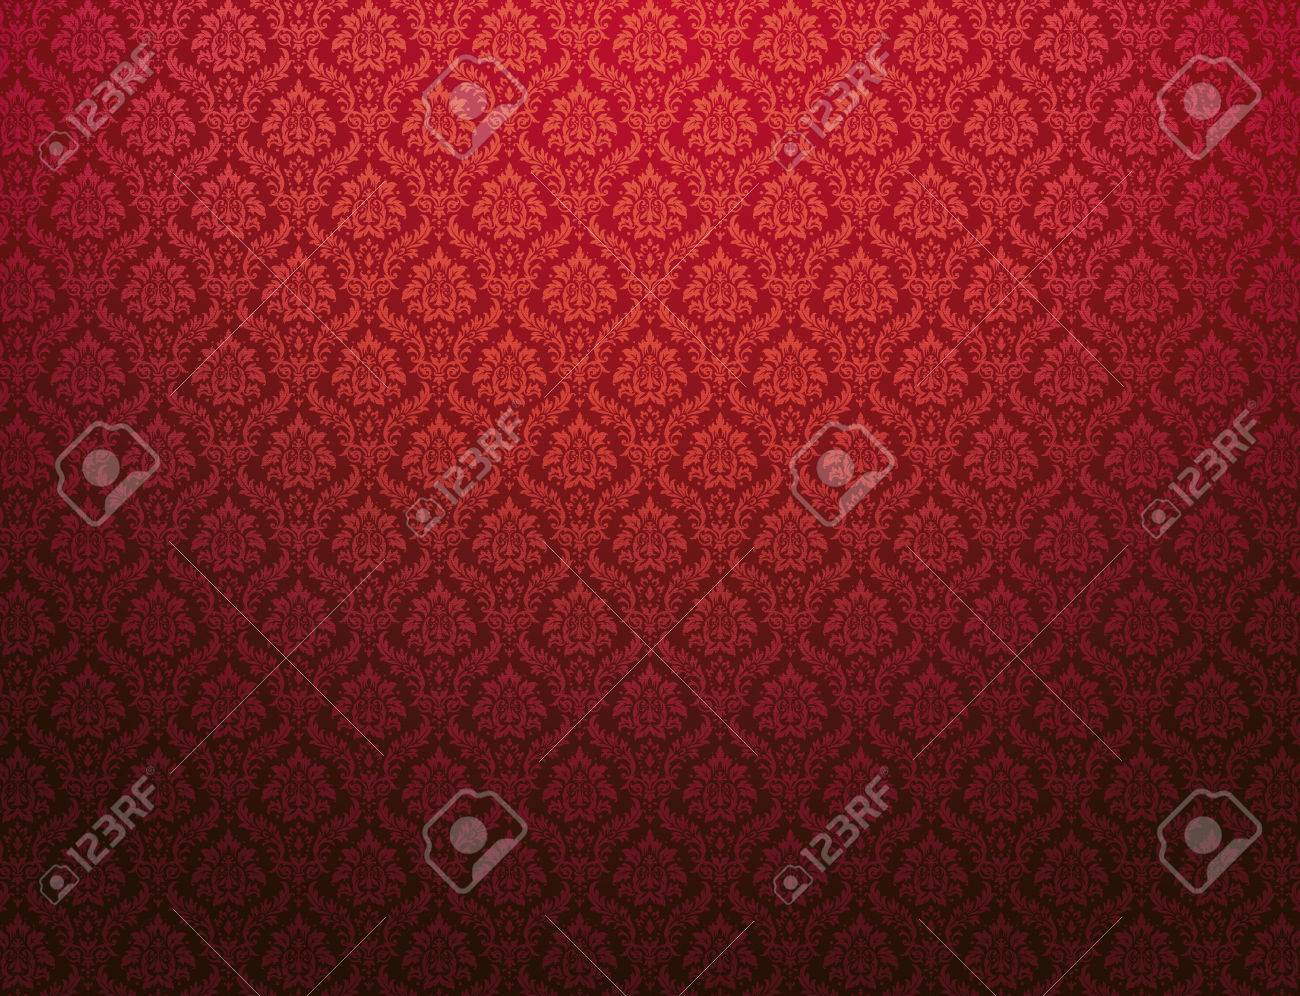 Red damask wallpaper with floral patterns - 70557917